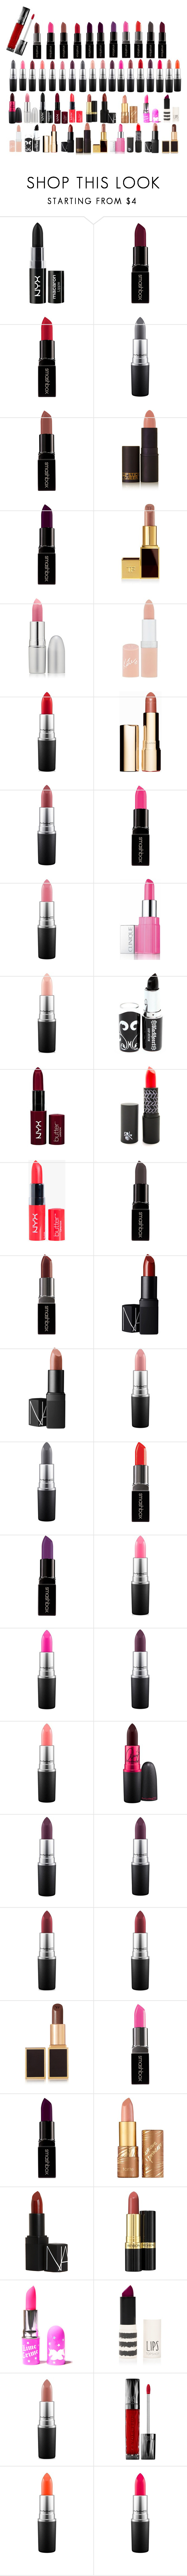 """""""Untitled #148"""" by softic-23 ❤ liked on Polyvore featuring NYX, Smashbox, MAC Cosmetics, Lipstick Queen, TheBalm, Rimmel, Clarins, Clinique, NARS Cosmetics and Tom Ford"""